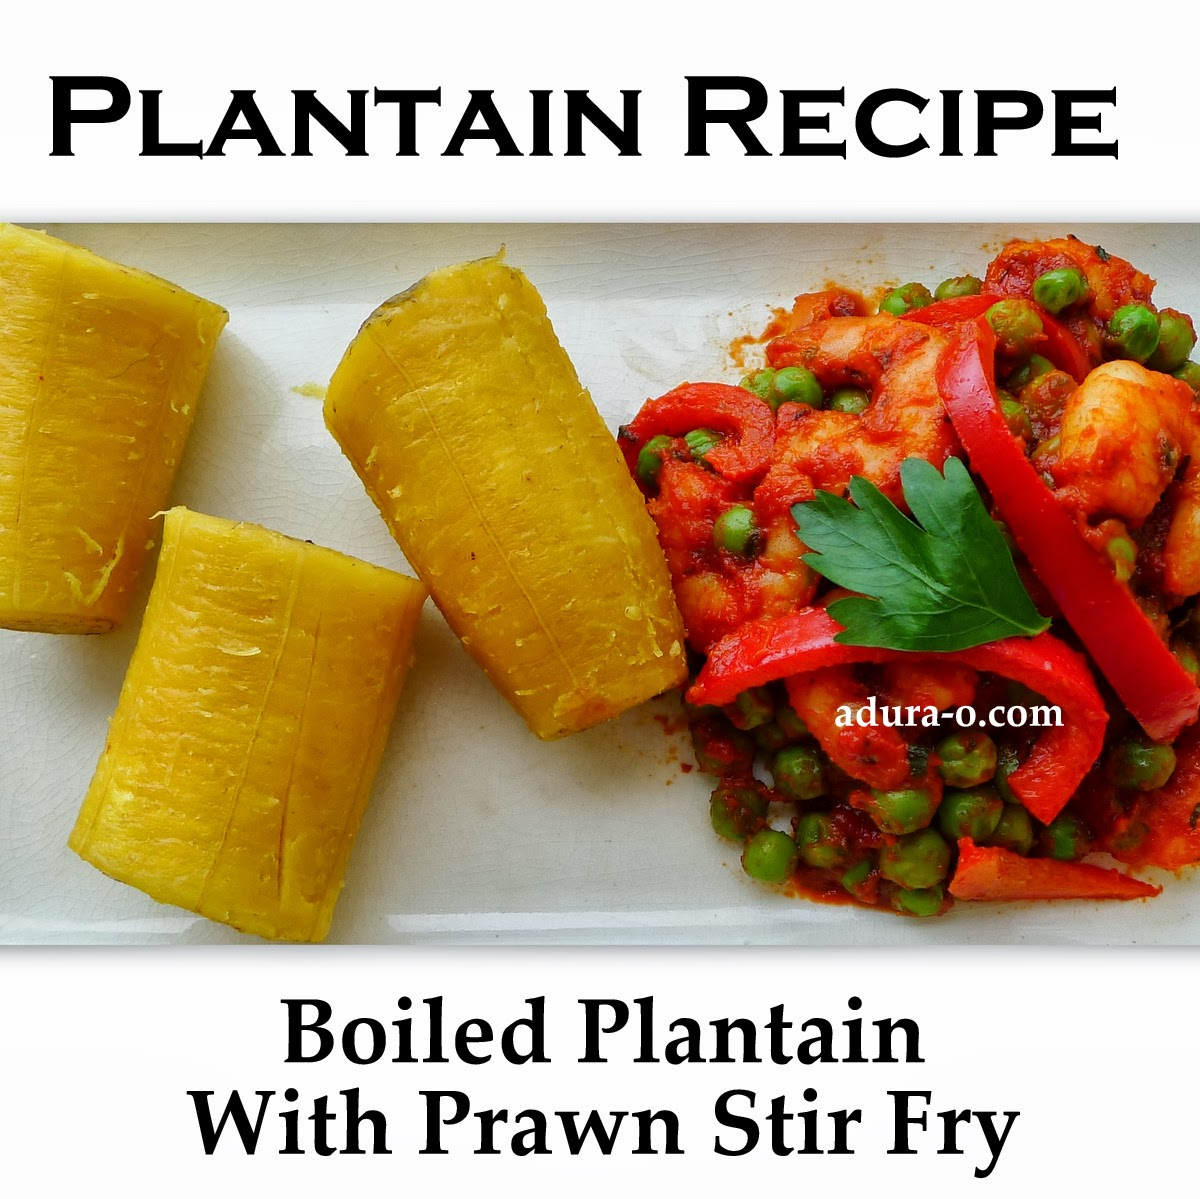 Healthy nigerian recipes adura o fitness wellness plantain recipe boiled plantain forumfinder Choice Image